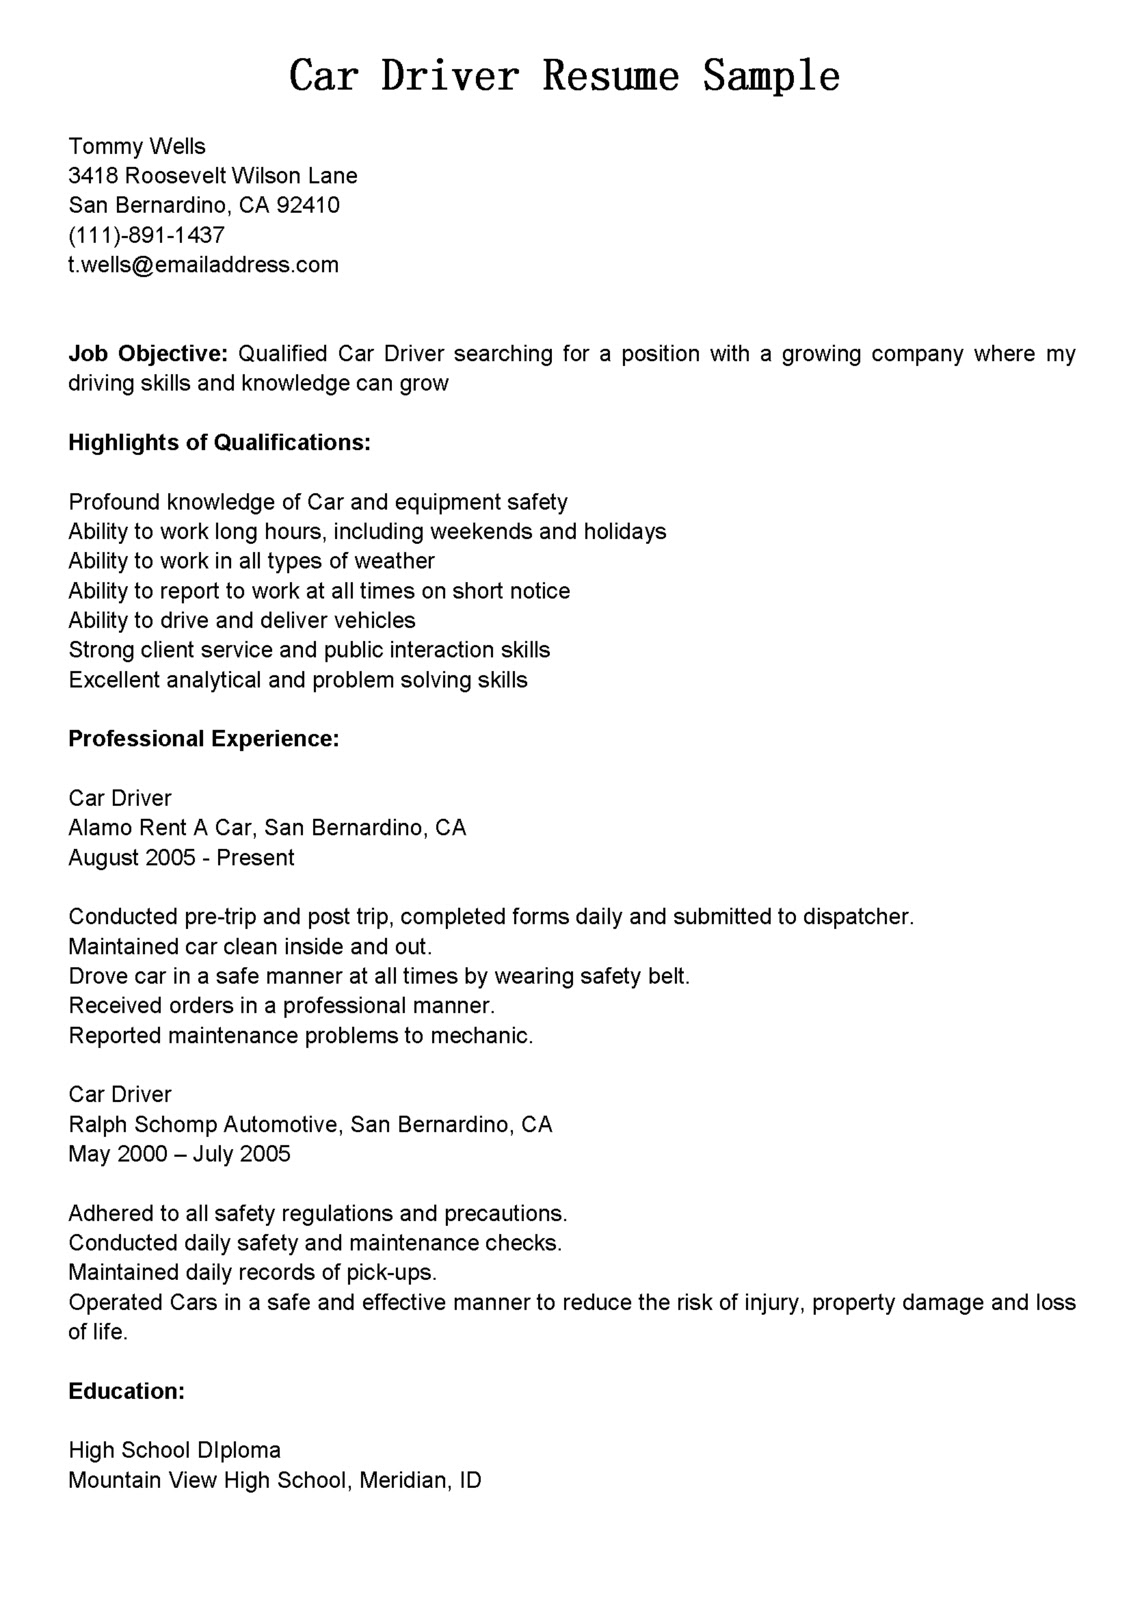 Cdl Driver Resume sample resume for cdl class b driver sample cover letter for driver position Aaaaeroincus Pleasant Library Resume Hiring Librarians With Ampinzz Ipnodns Ru Bus Car Driver Resume Sample Bus Templates Shuttle Bus Driver Templates